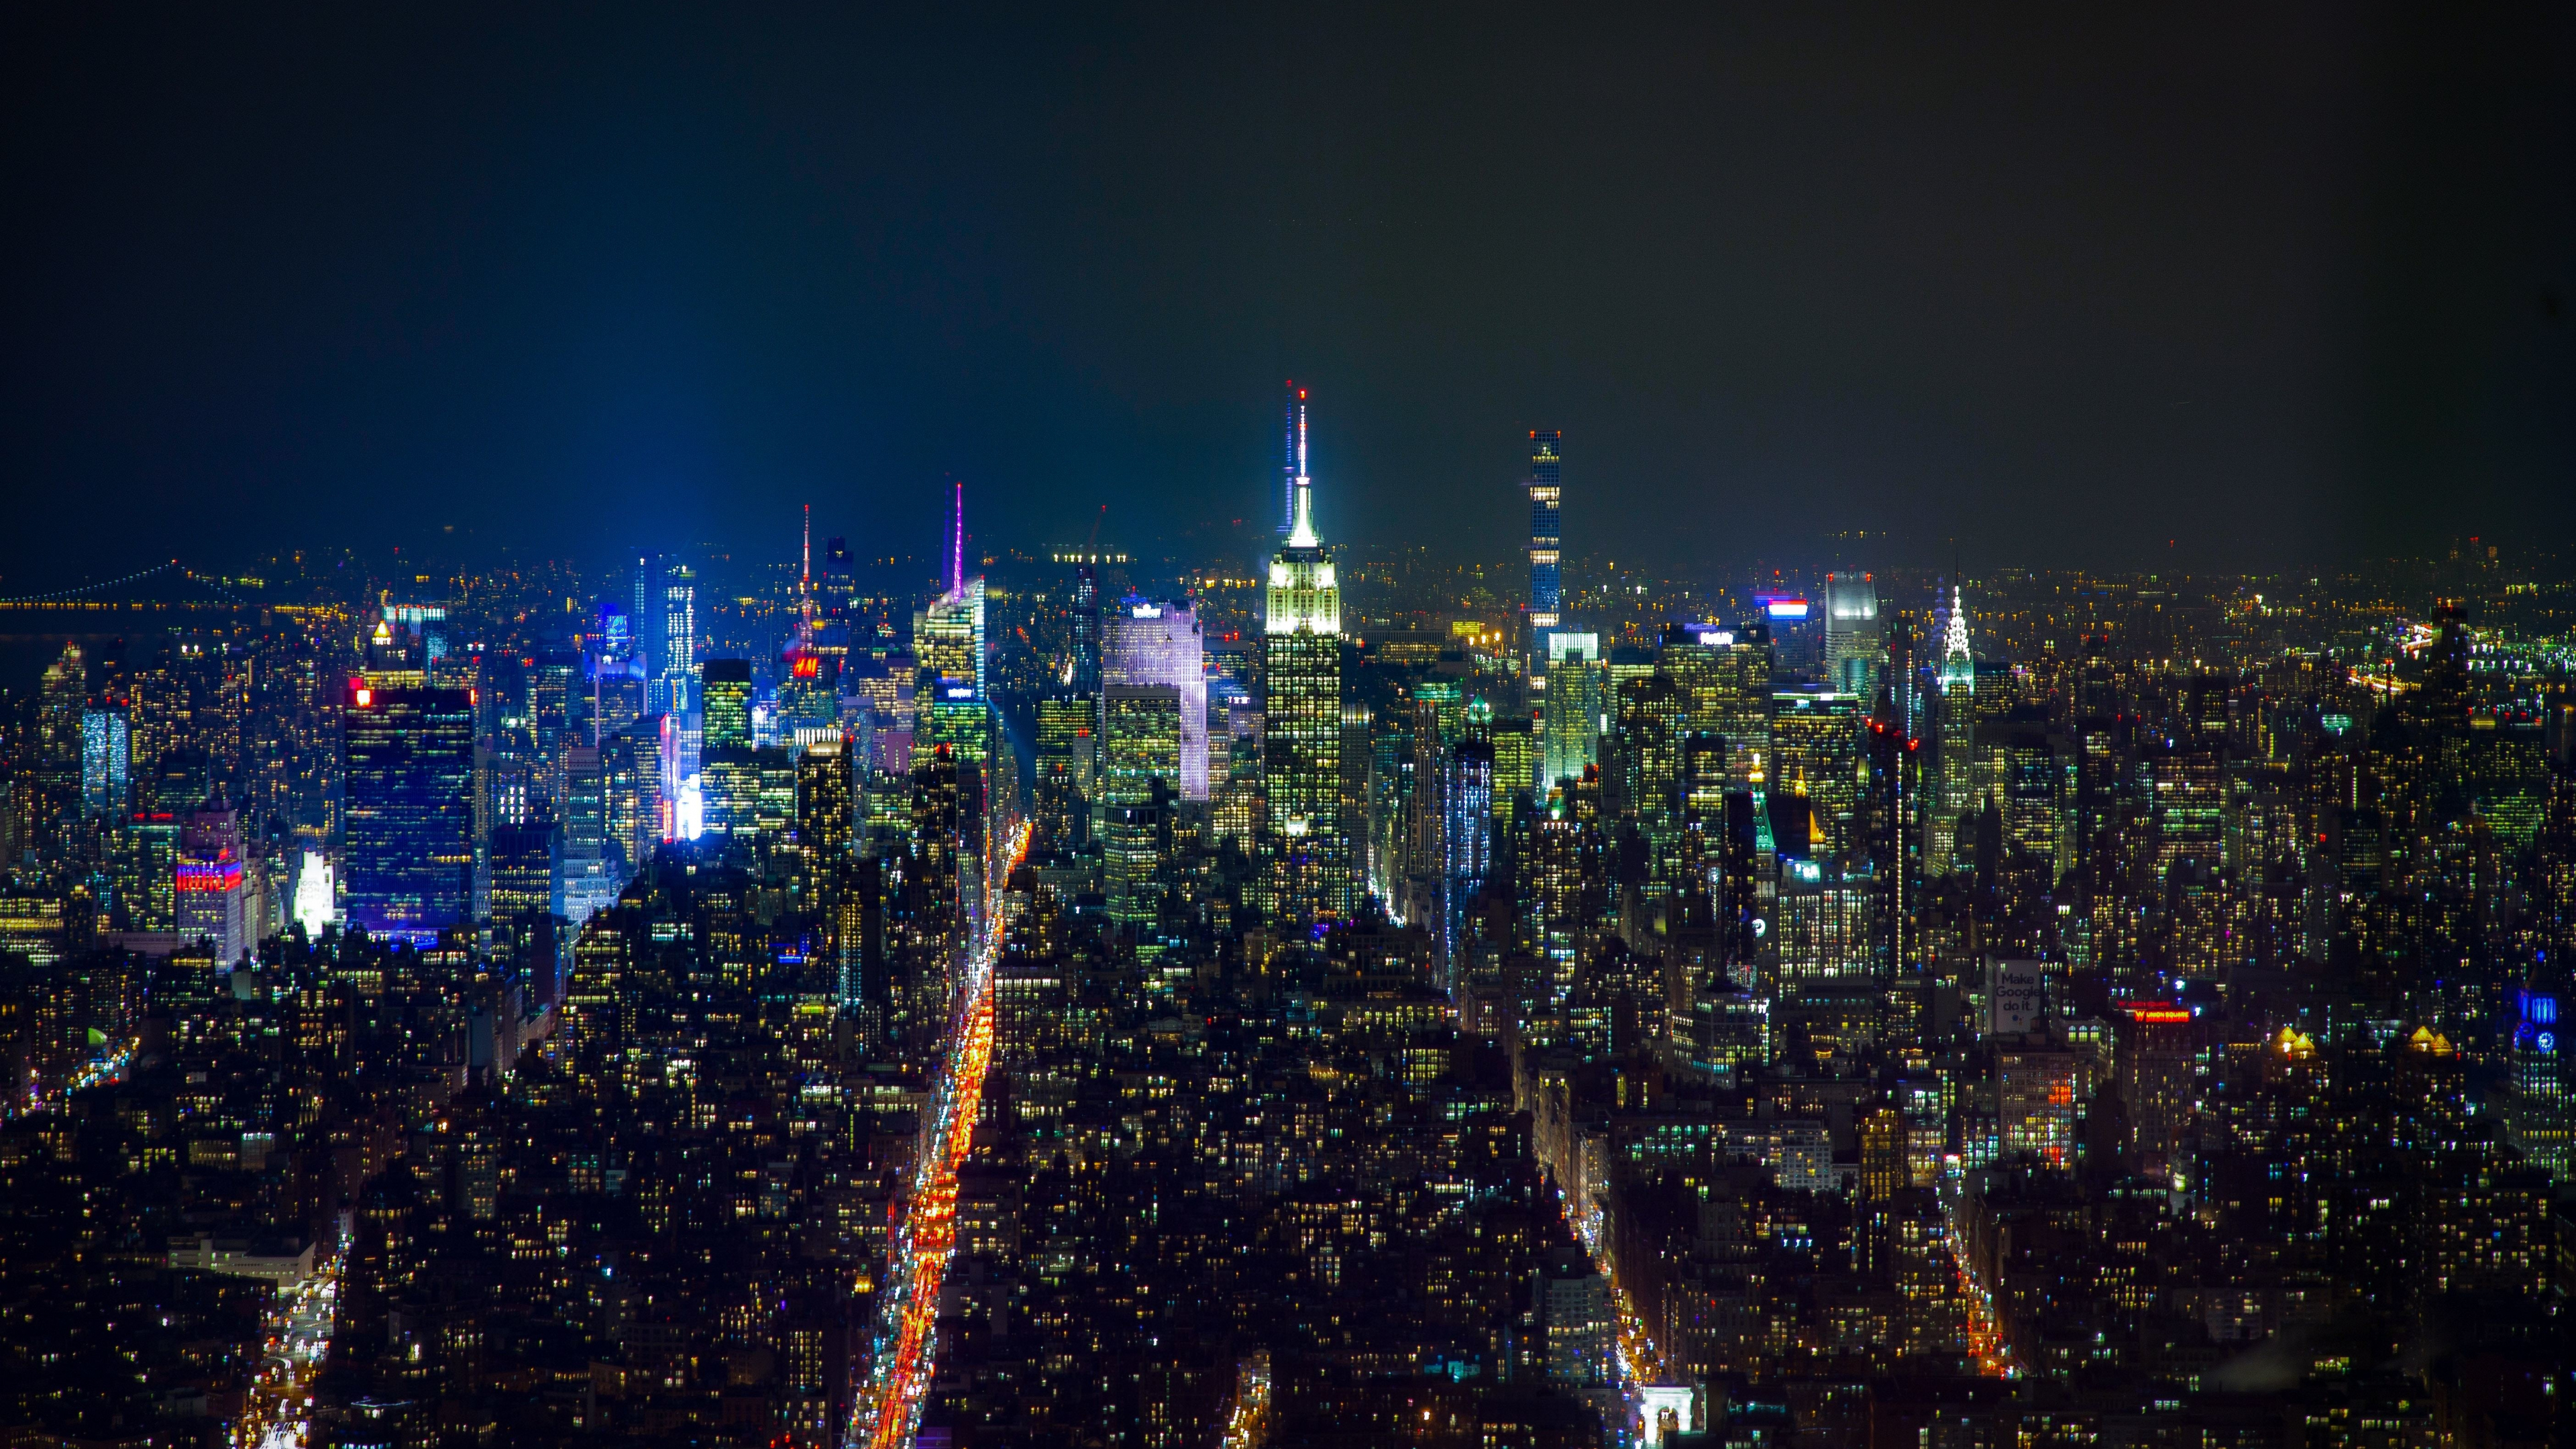 Download 3840x2160 Wallpaper New York Buildings At Night Cityscape 4k Uhd 16 9 Widescreen 3840x2160 Hd Image Background 8611